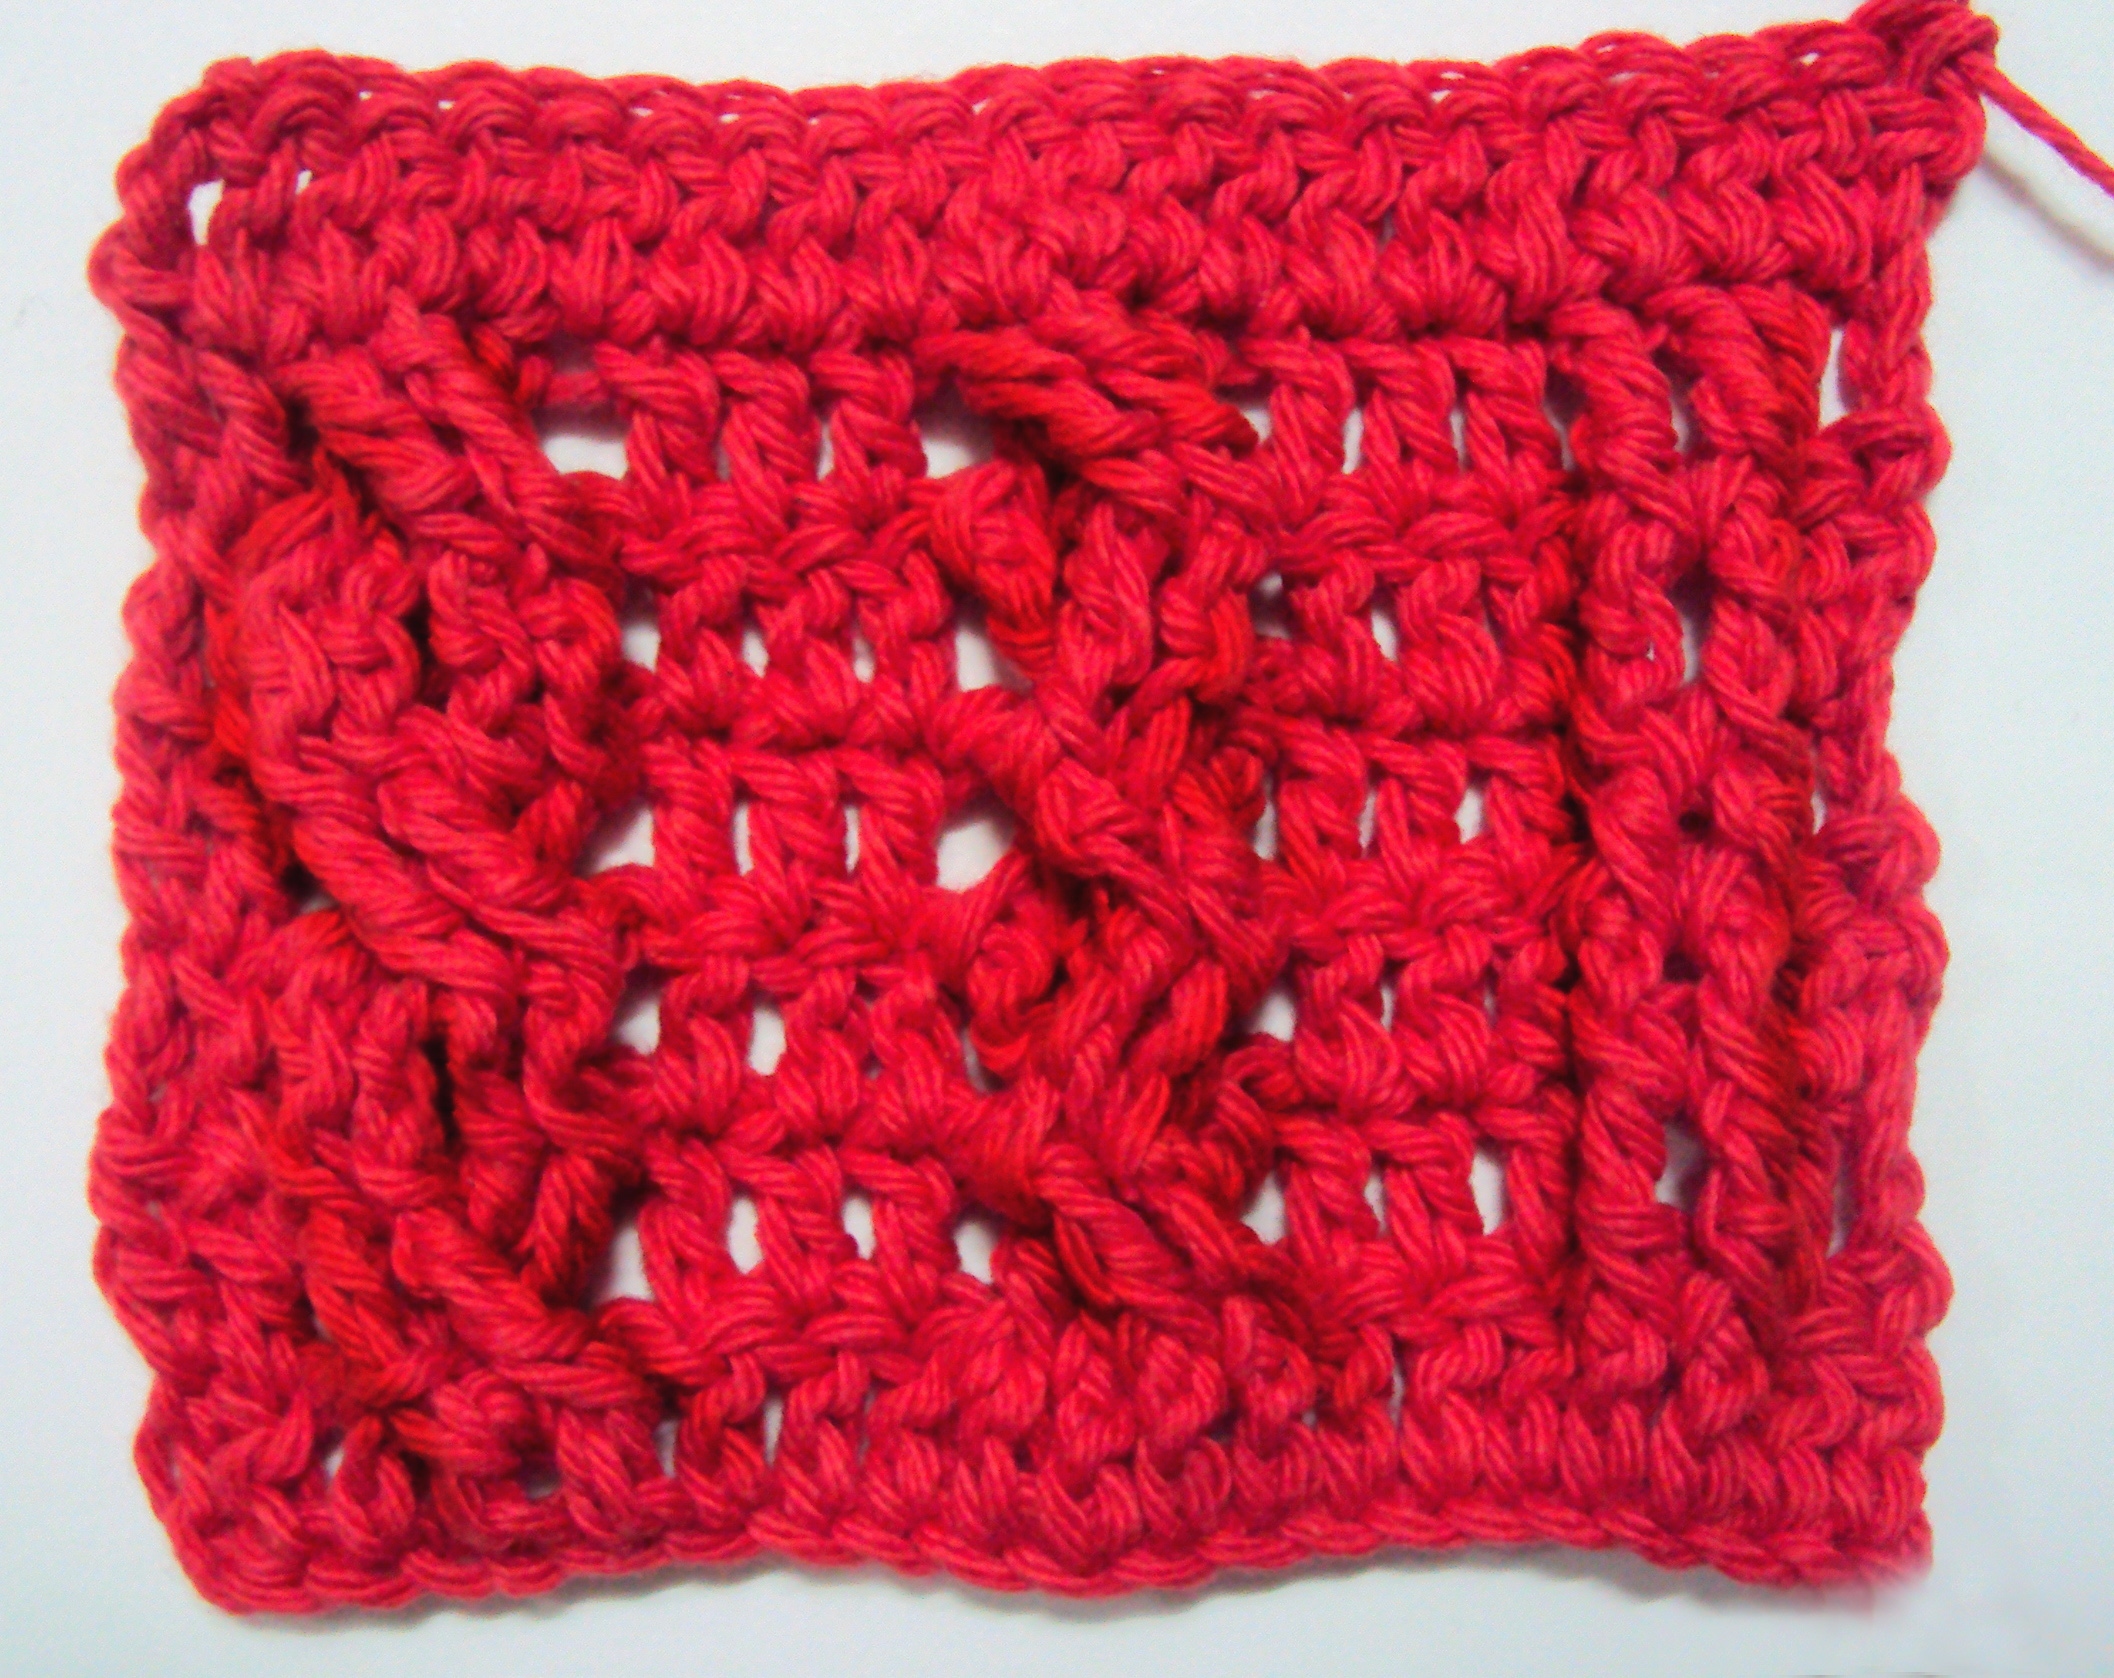 Crochet Stitches Gallery : Crochet Stitches How to crochet: cable stitches